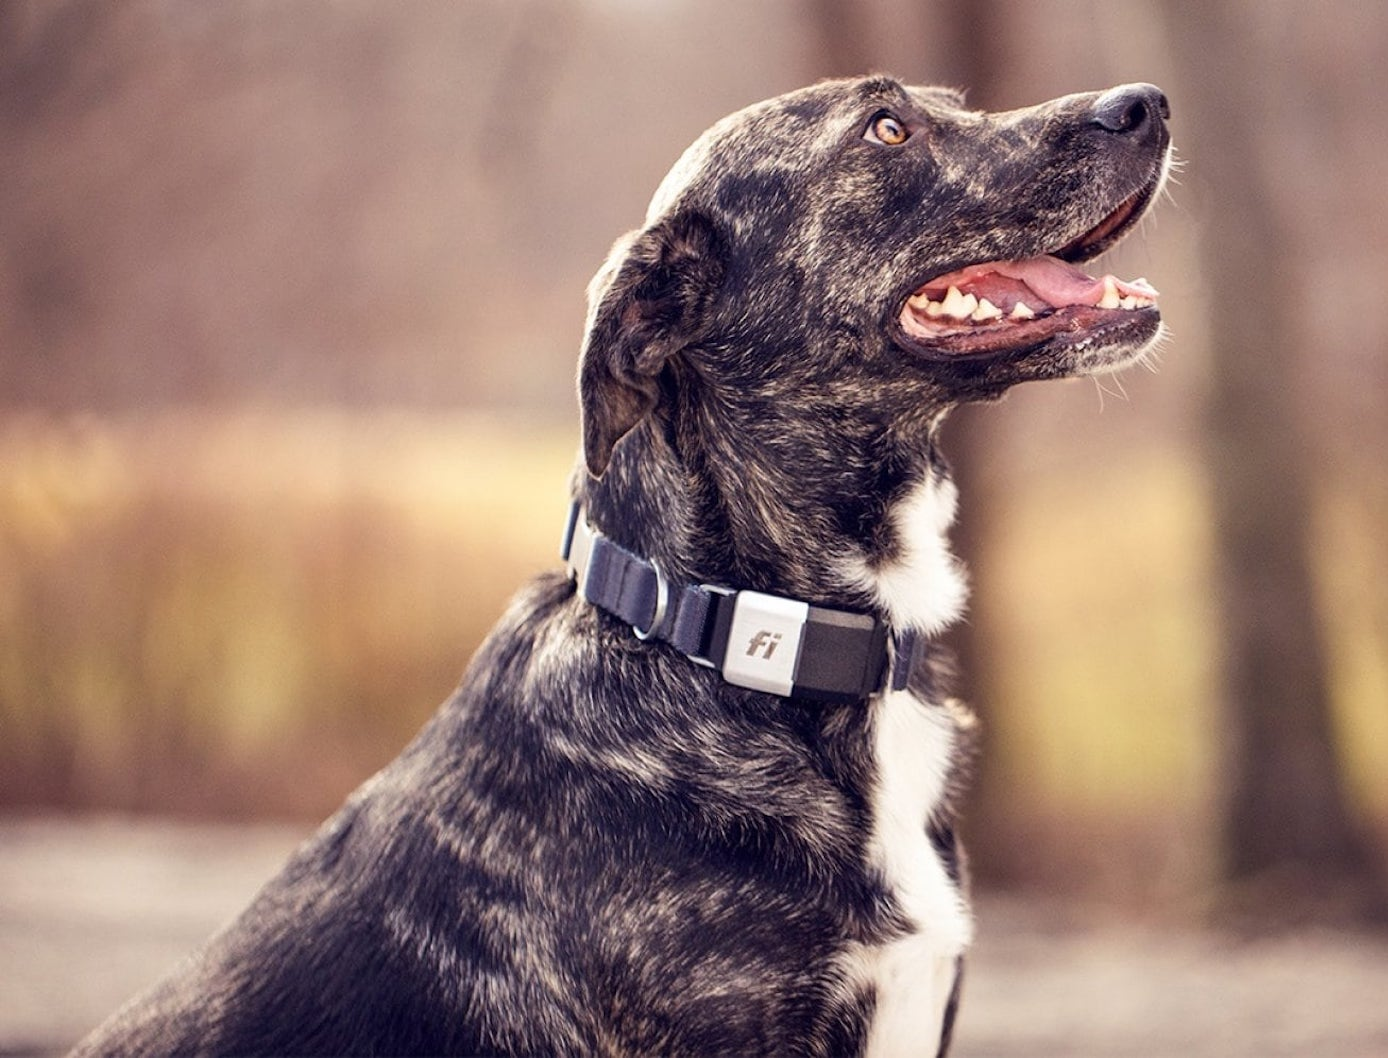 Fi Health-Tracking GPS Dog Collar is perfect for keeping track of your dog while you're away